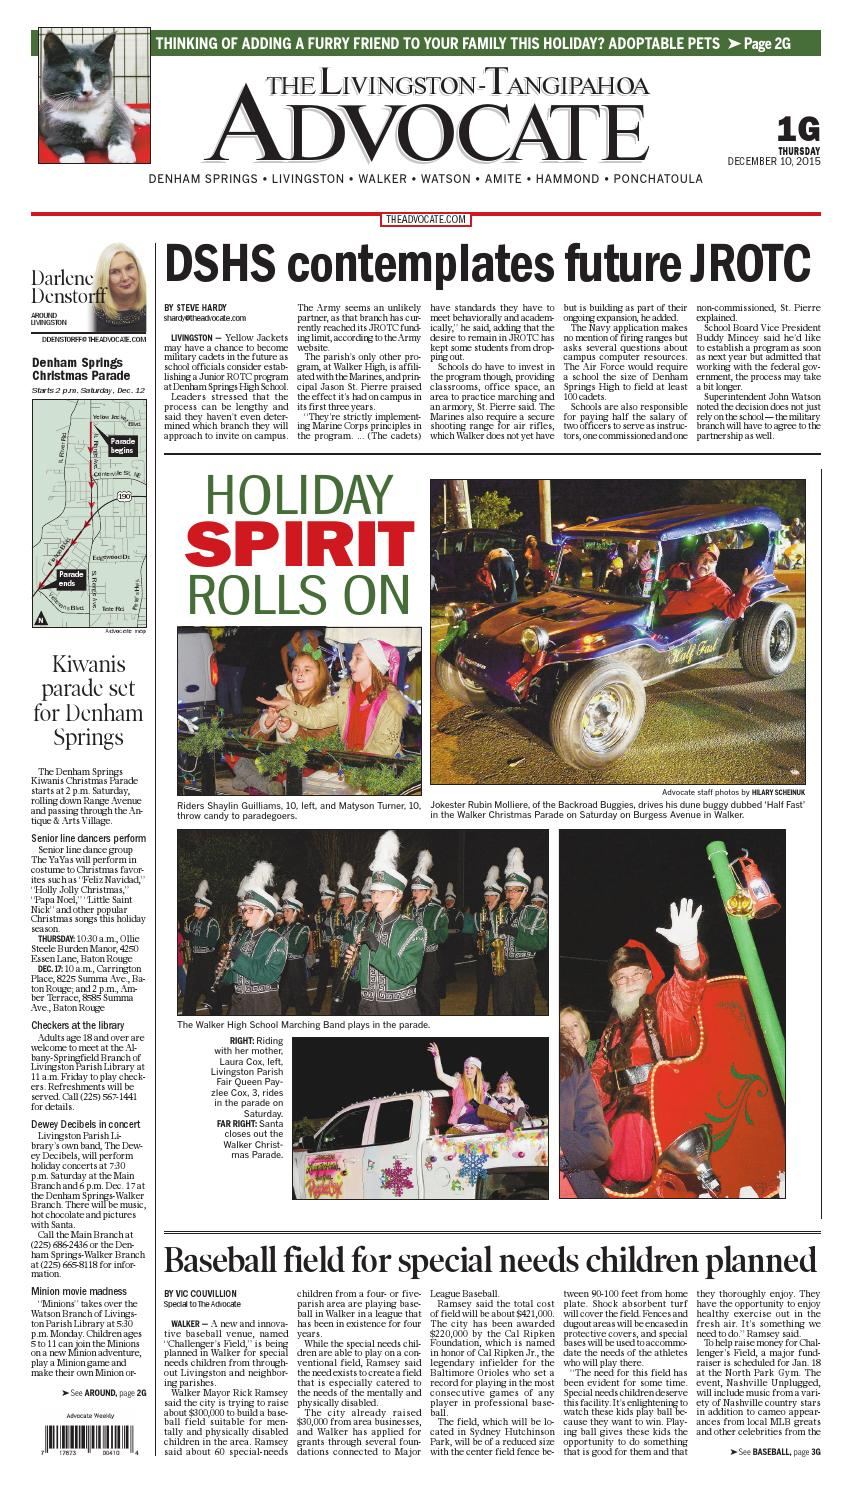 The Livingston-Tangipahoa Advocate 12-10-2015 by The Advocate - issuu